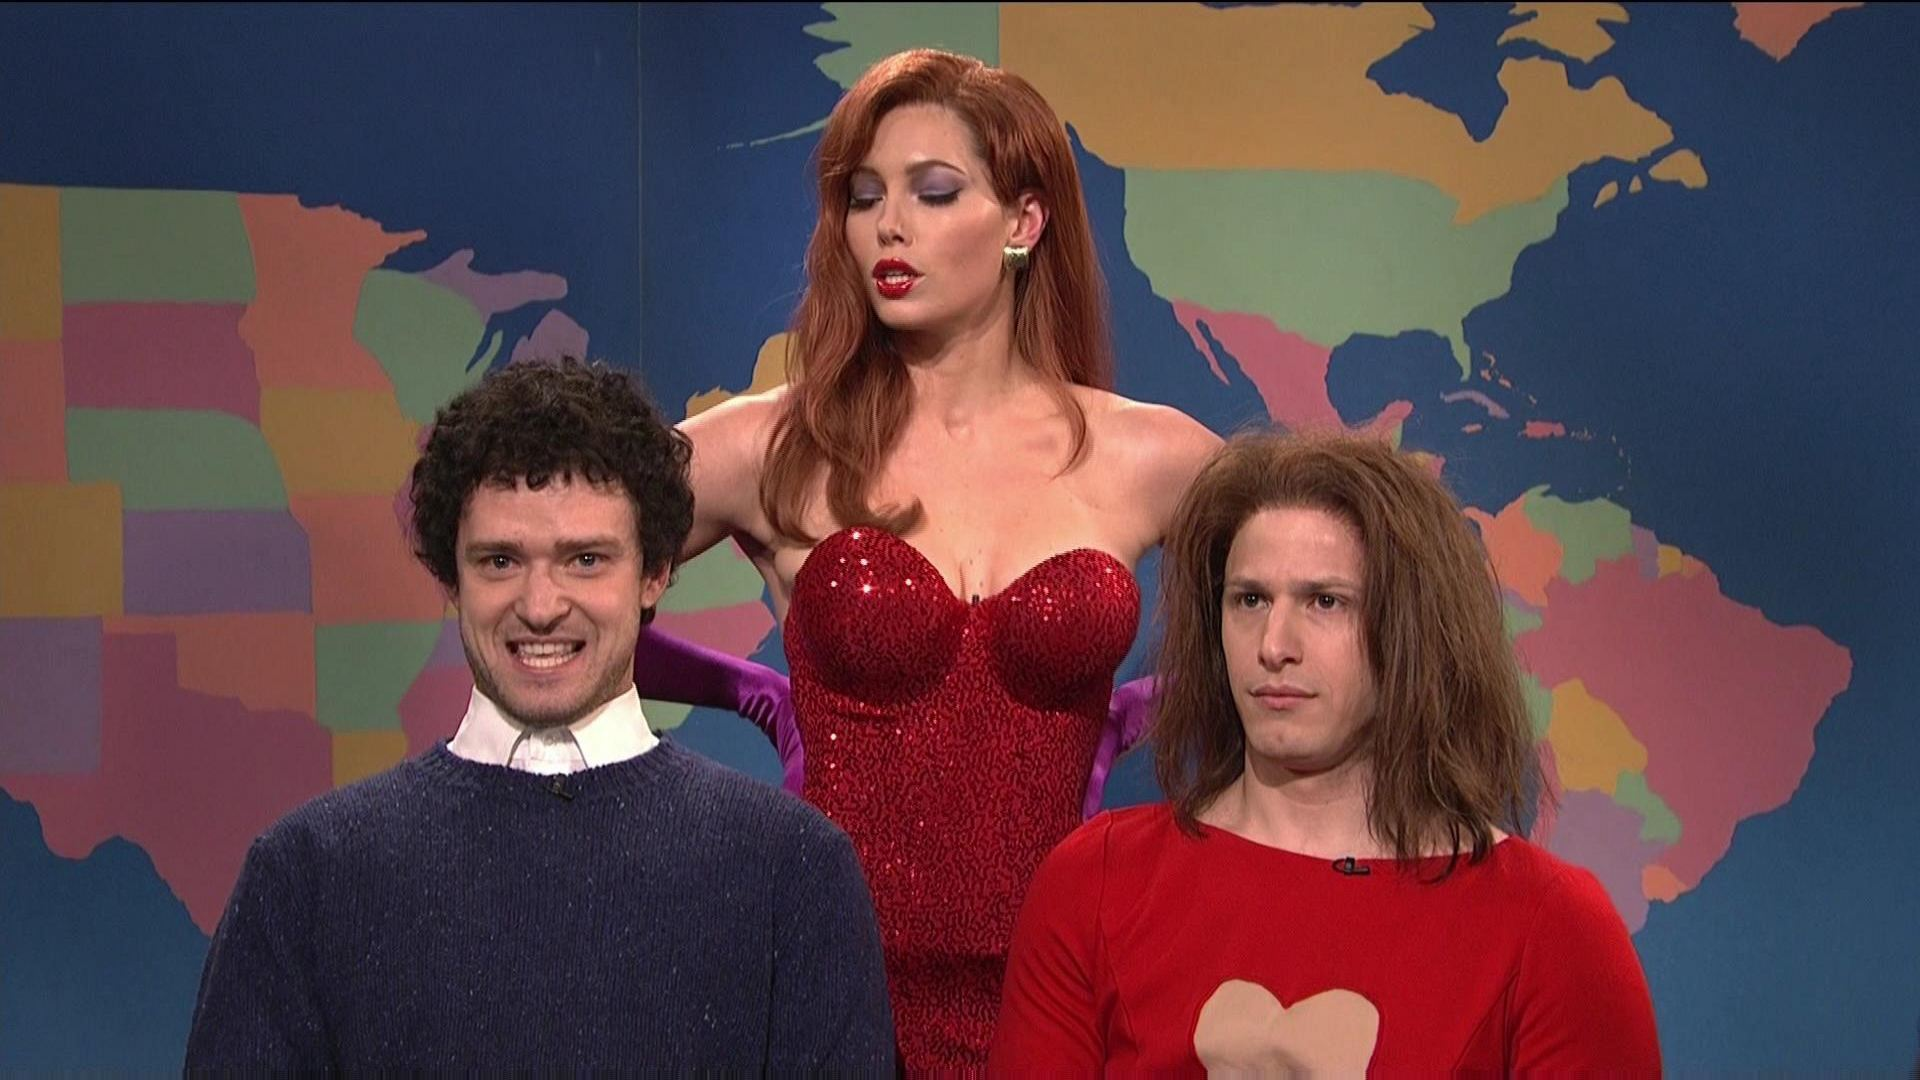 Jessica Biel snl justin HD Wallpaper